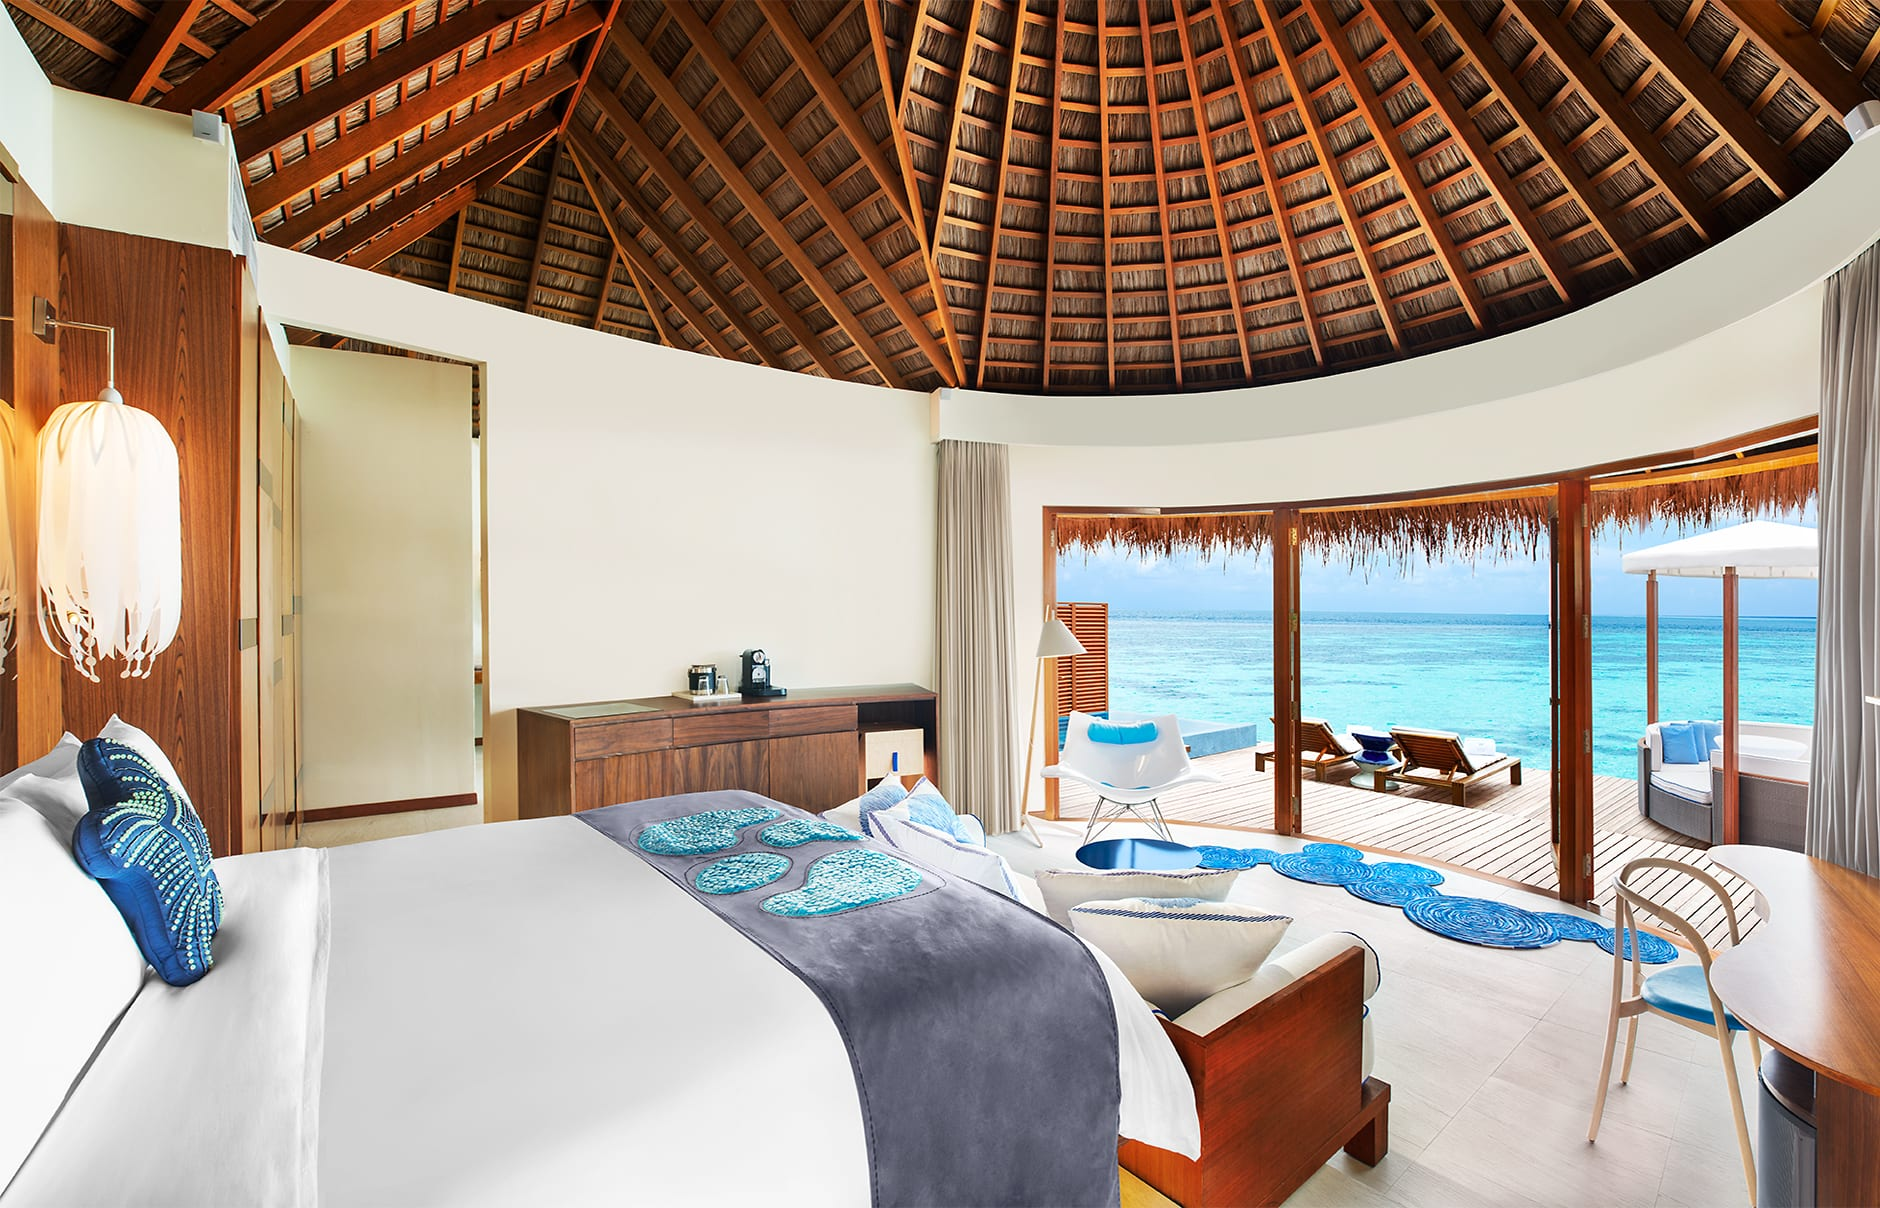 Ocean Oasis Retreat. W Maldives, Fesdu Island, Maldives. Hotel Review by TravelPlusStyle. Photo © Marriott International